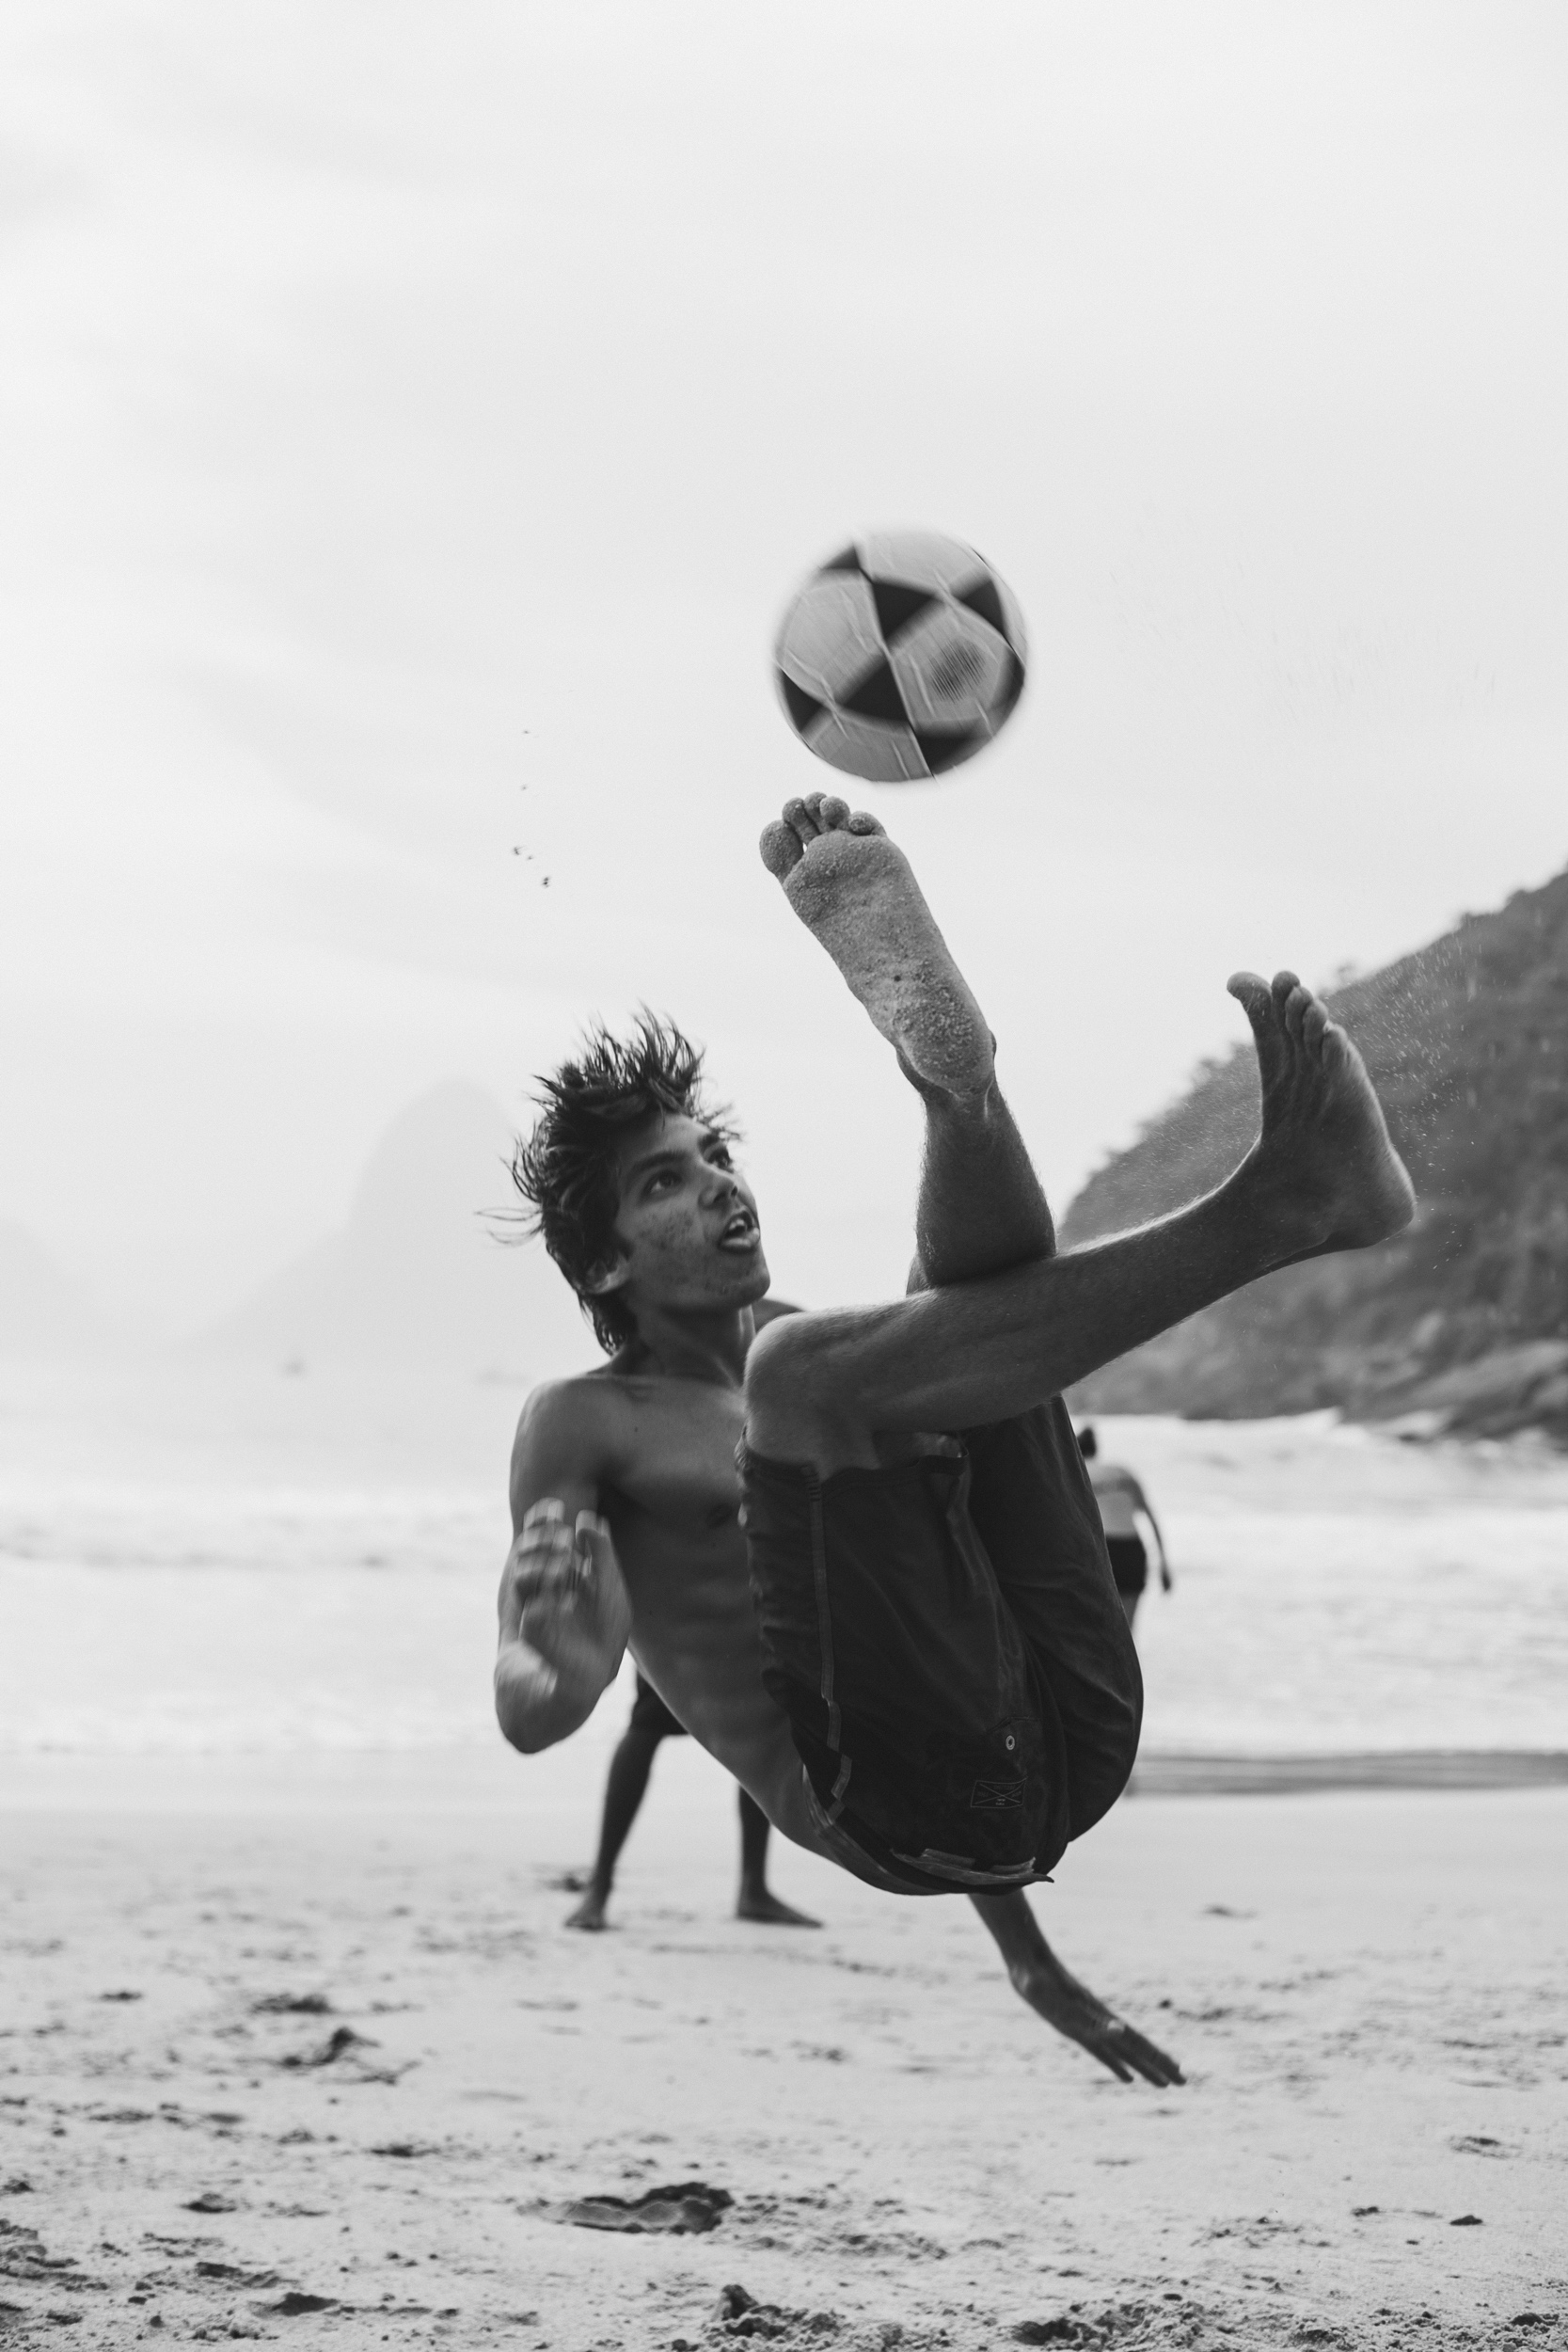 Grayscale Photography Of Man Playing Soccer